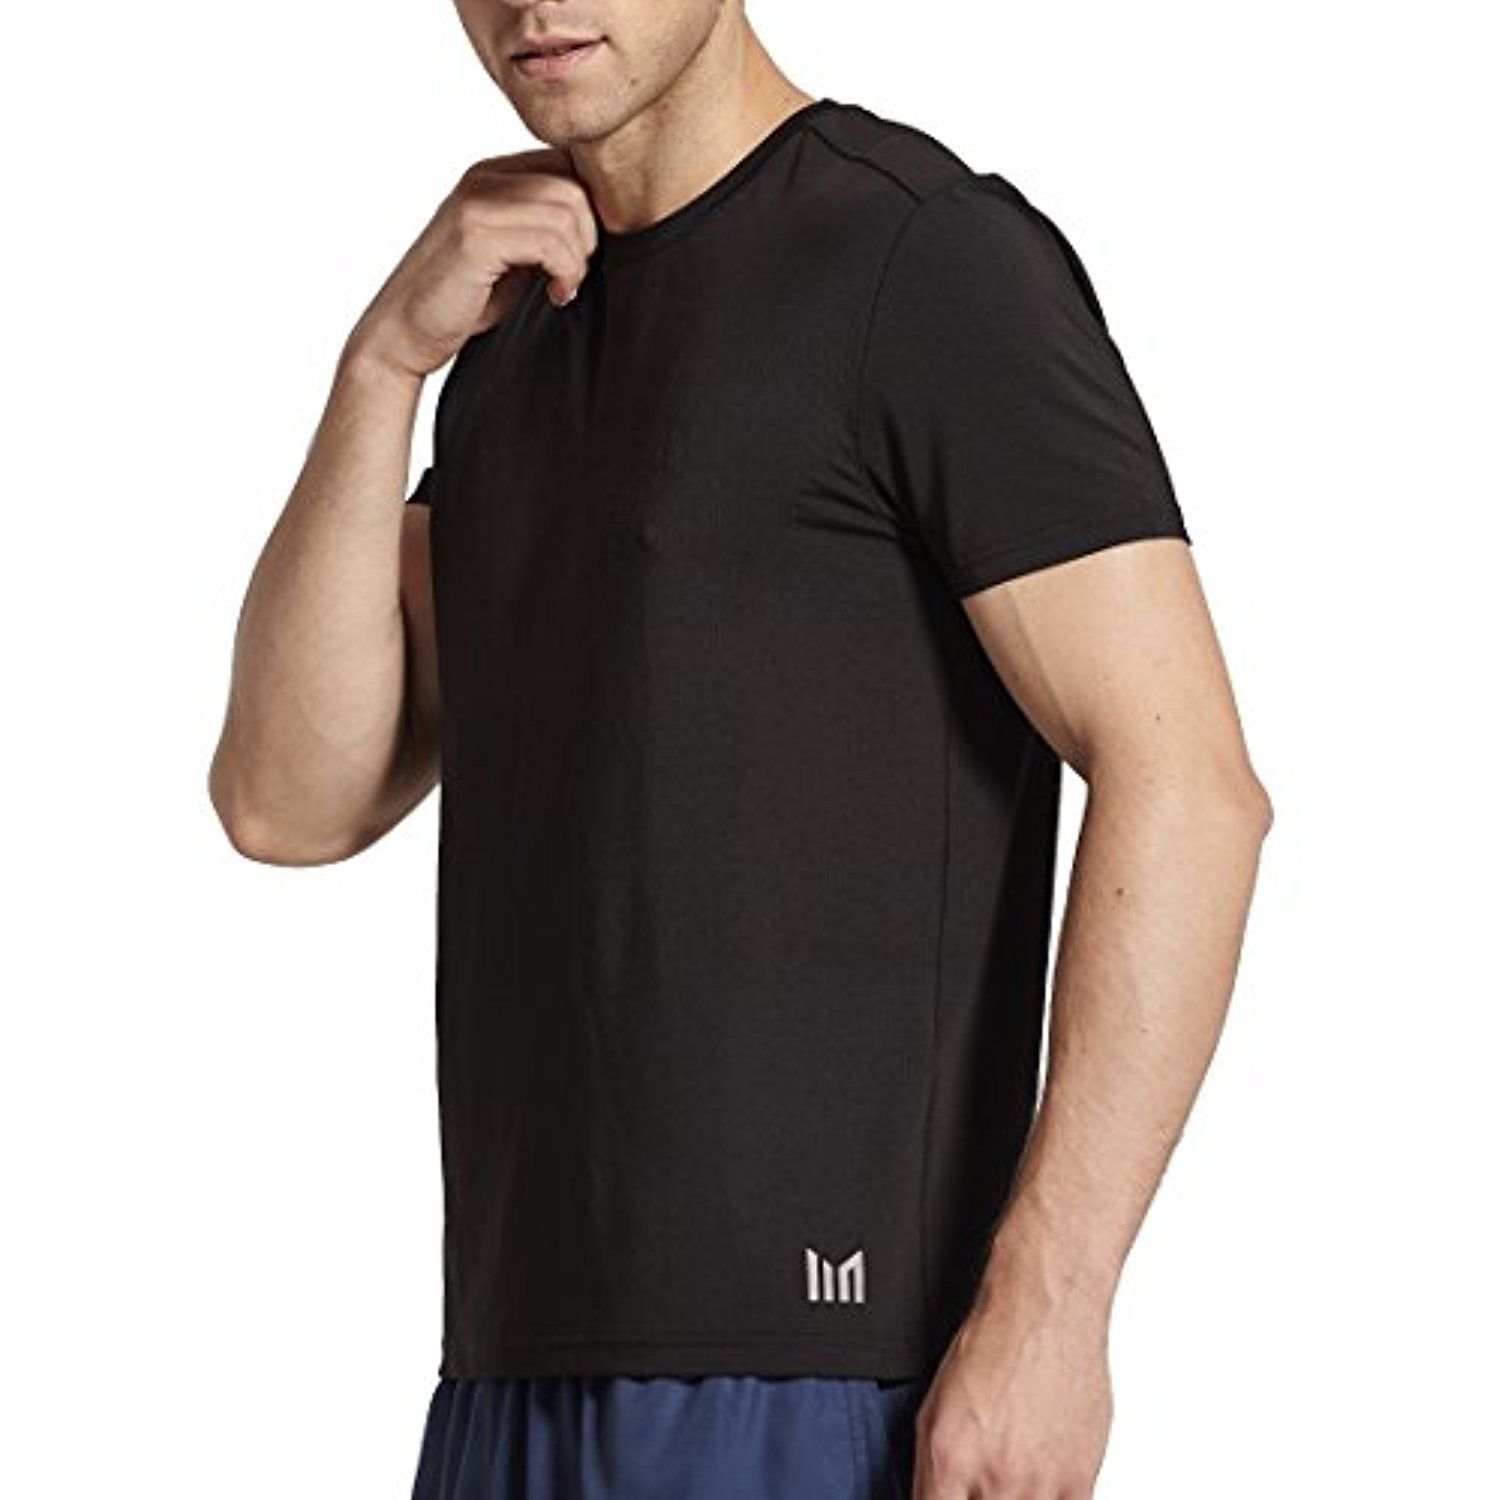 21c3f604 MOFEVER Men Fitness Workout Gym Running Short Sleeve Tee Shirts Tops Black  with Crew Neck Yoga Athletic Exercise Sports Training Quick Dry Fit ...